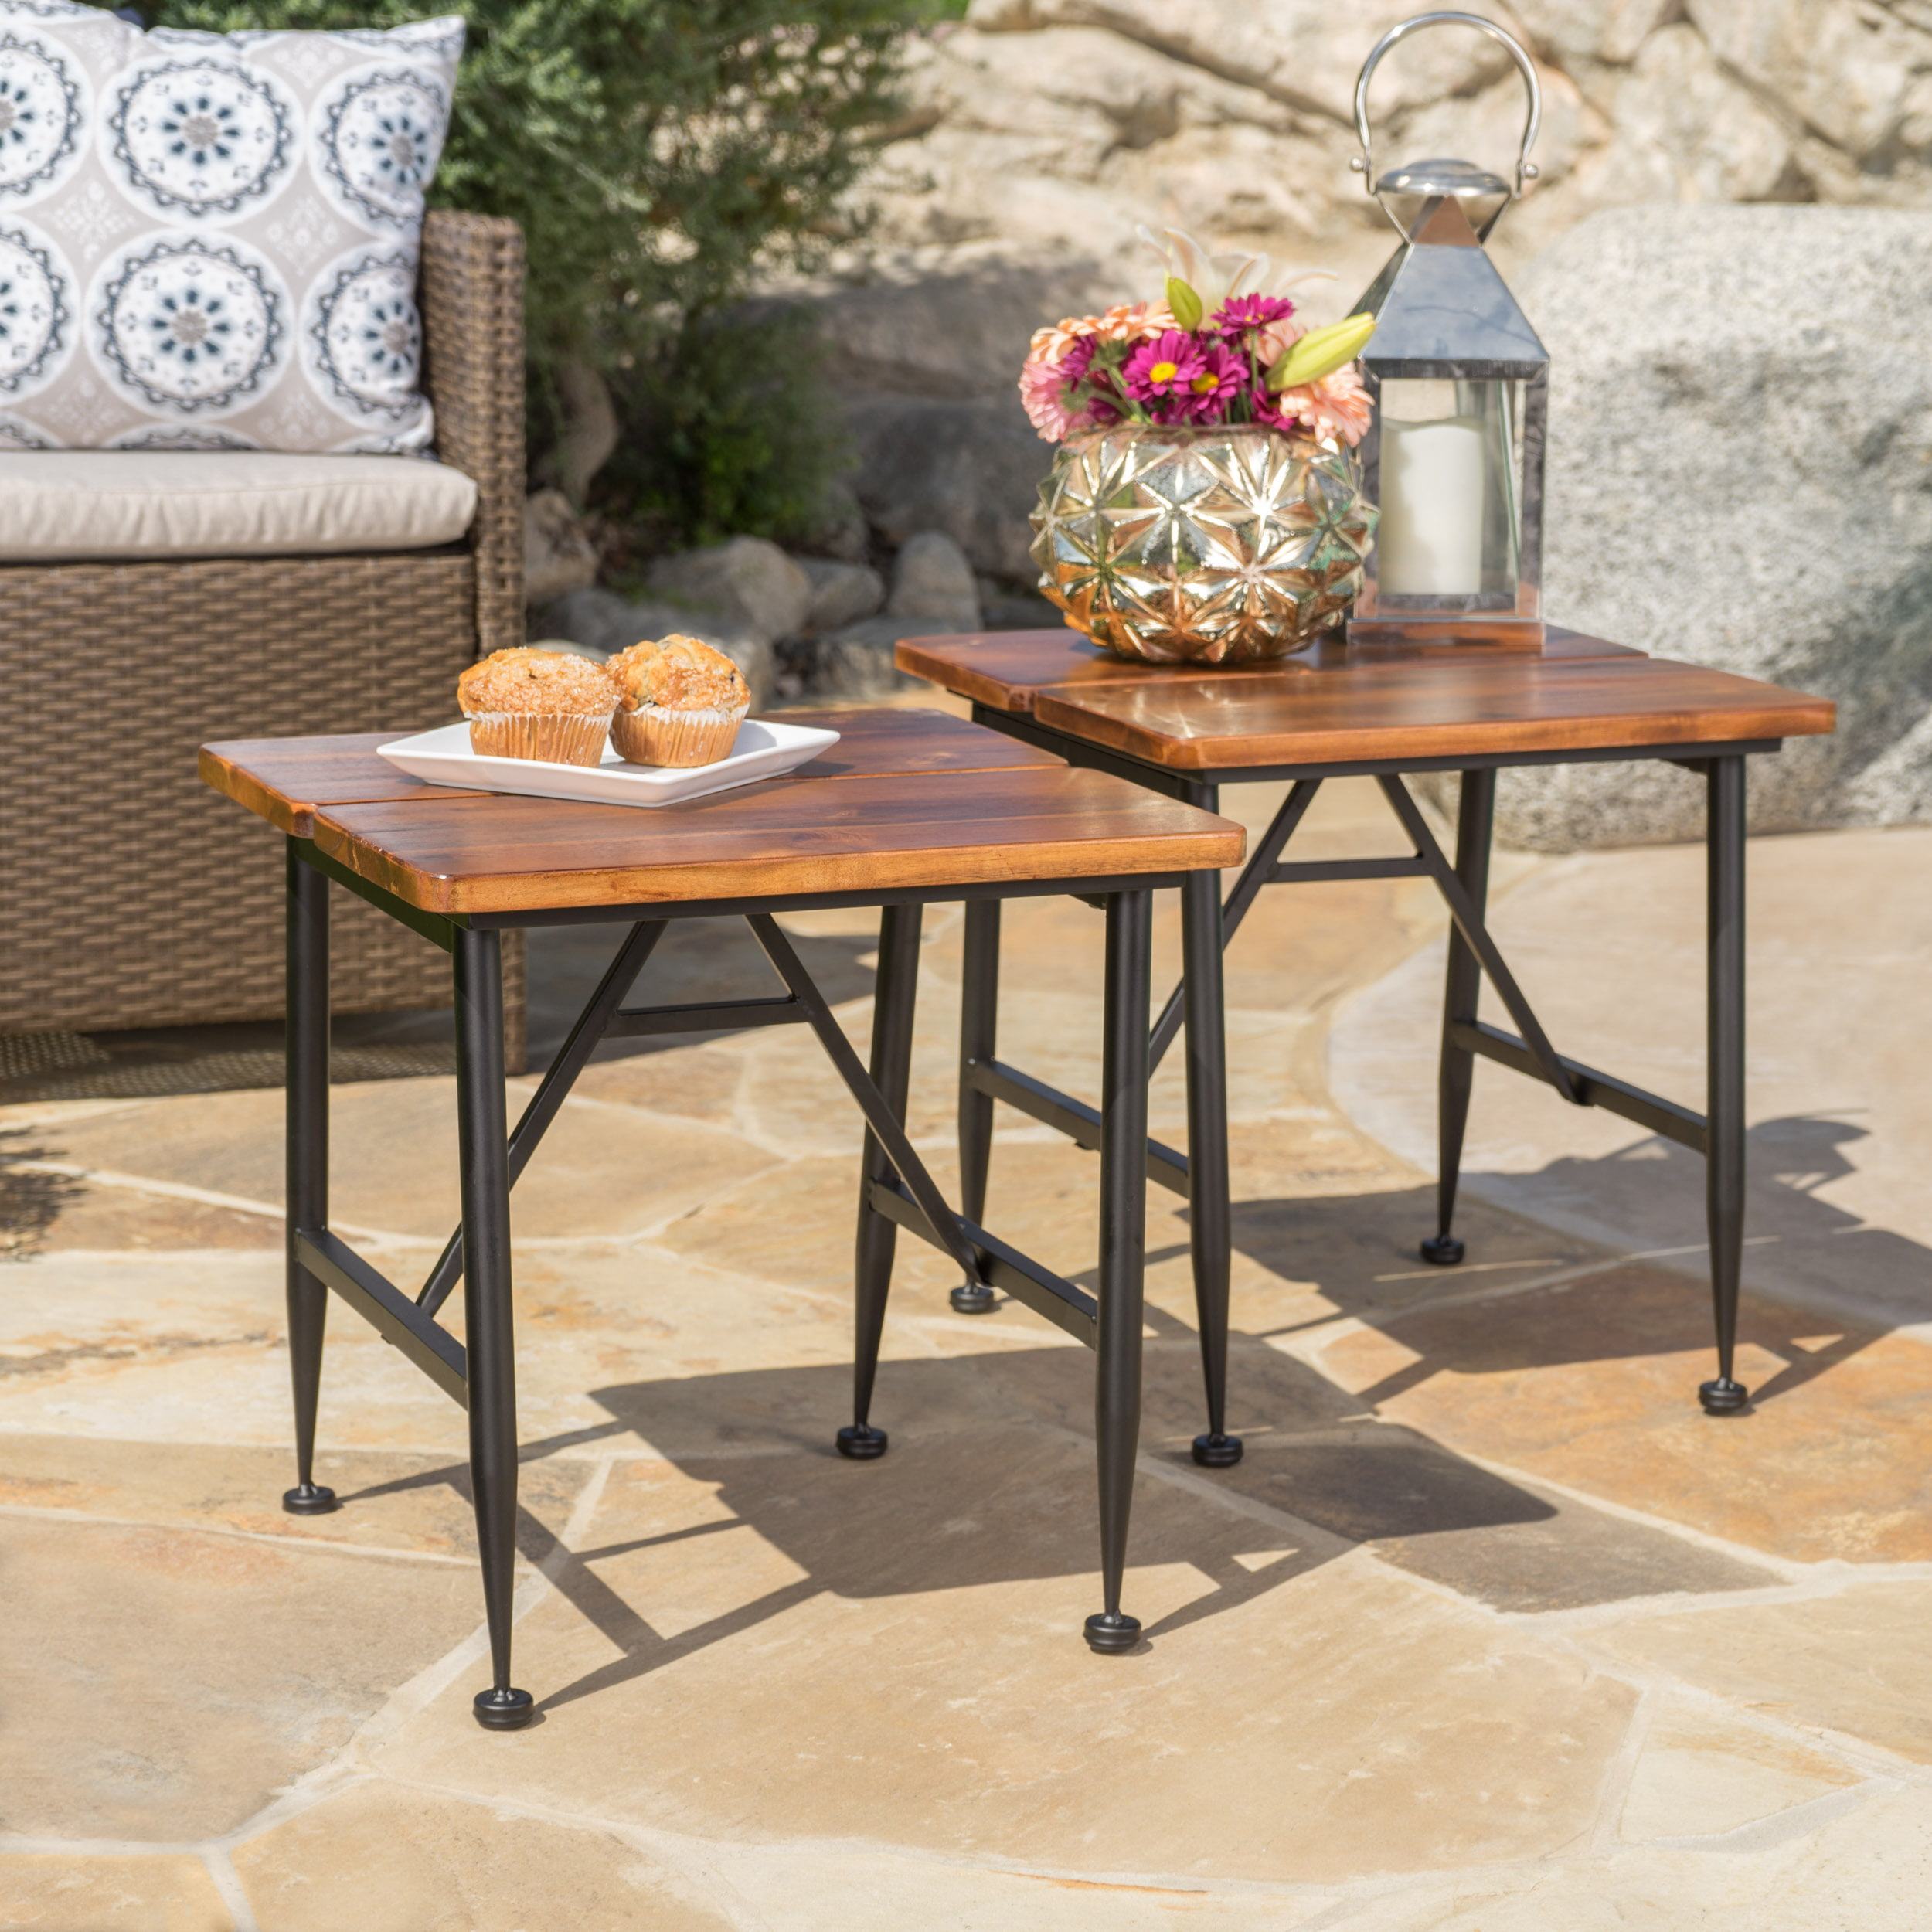 Cascada Outdoor Acacia Wood Accent Table With Iron Accents Set Of 2 Antique Finish Black